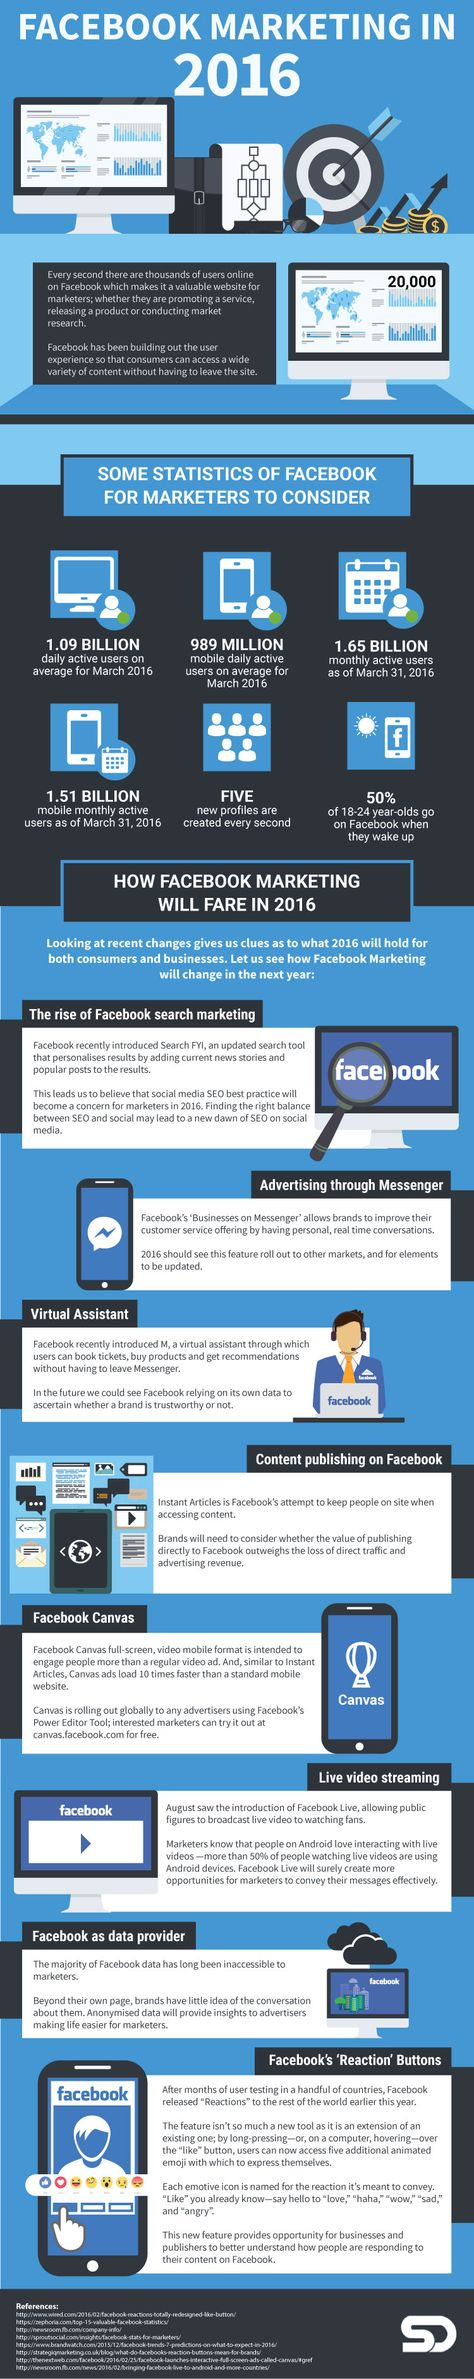 facebook an online marketing tools When preparing an emarketing campaign, electronic tools are used to achieve your online marketing objectives there are a plethora of tools available to facilitate emarketing, though company does not have to use all of them.